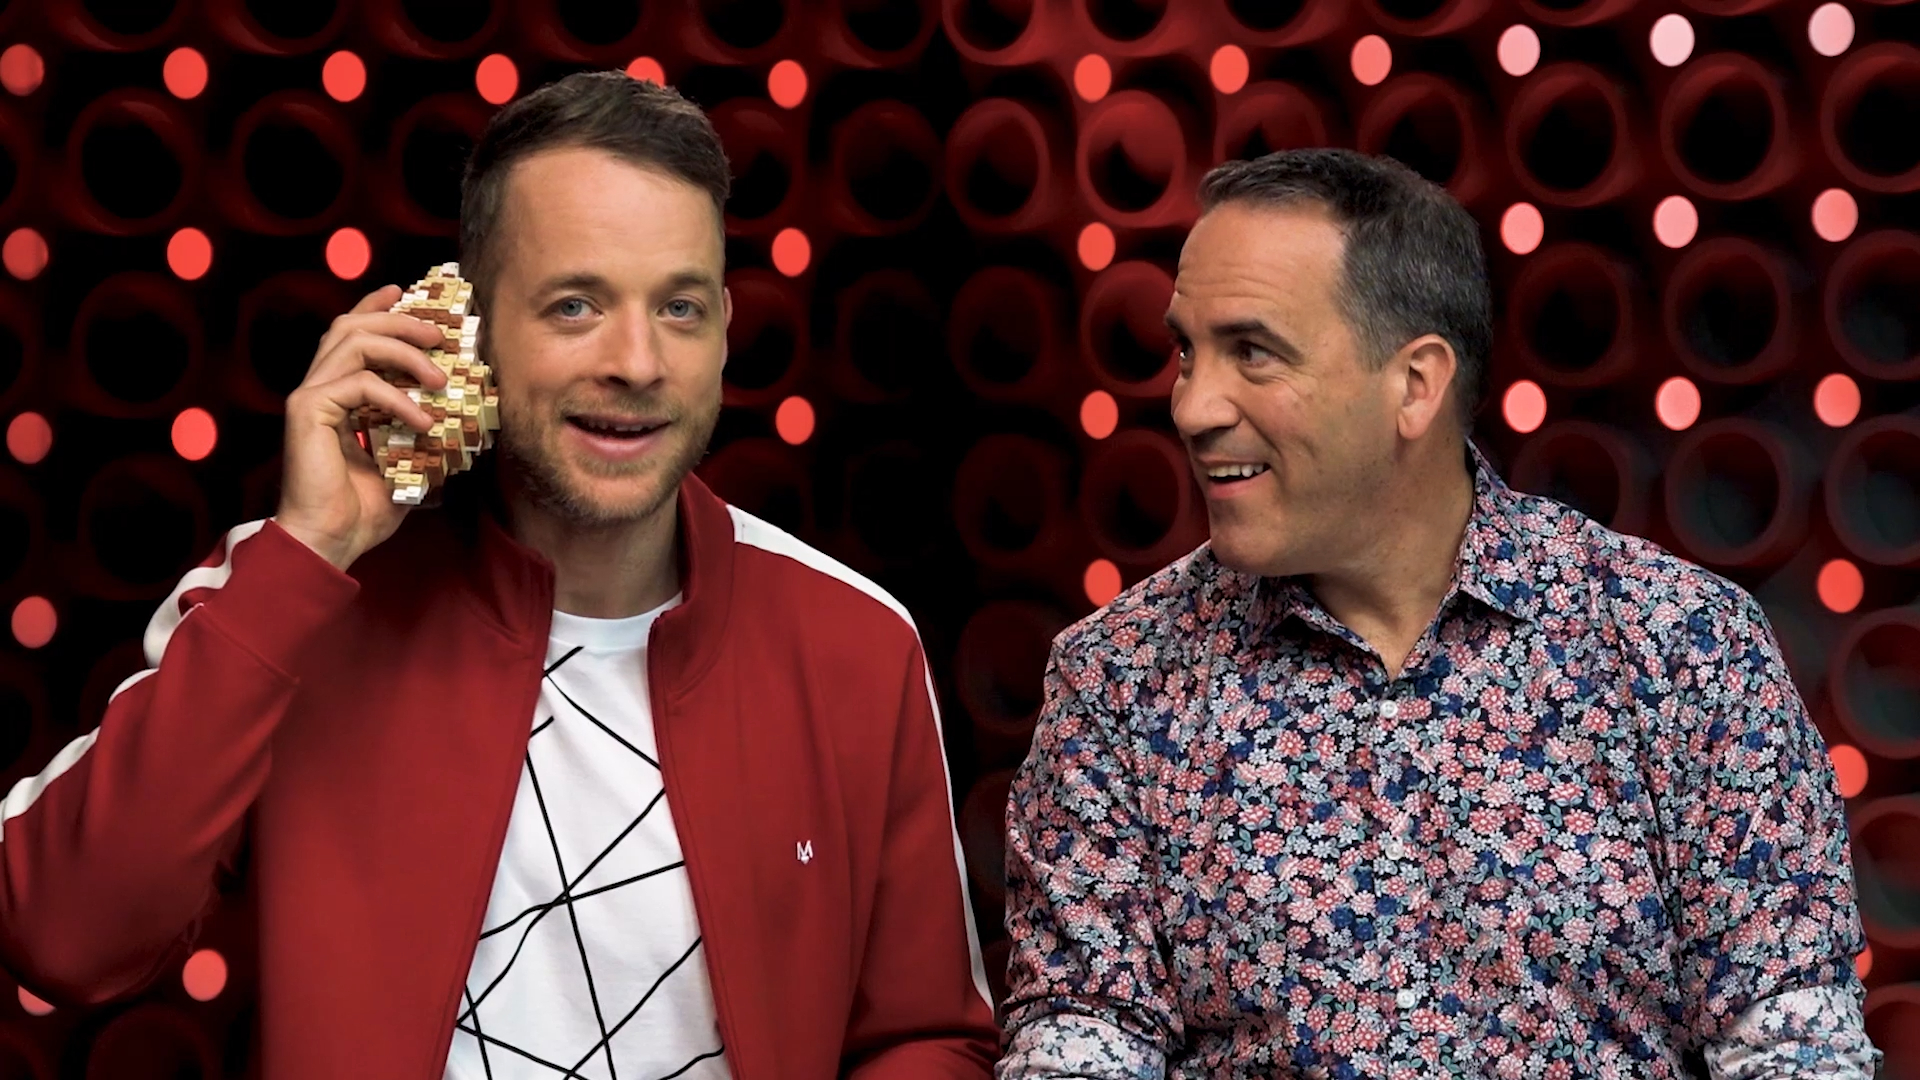 Hamish Blake challenges Brickman to build a seashell out of LEGO